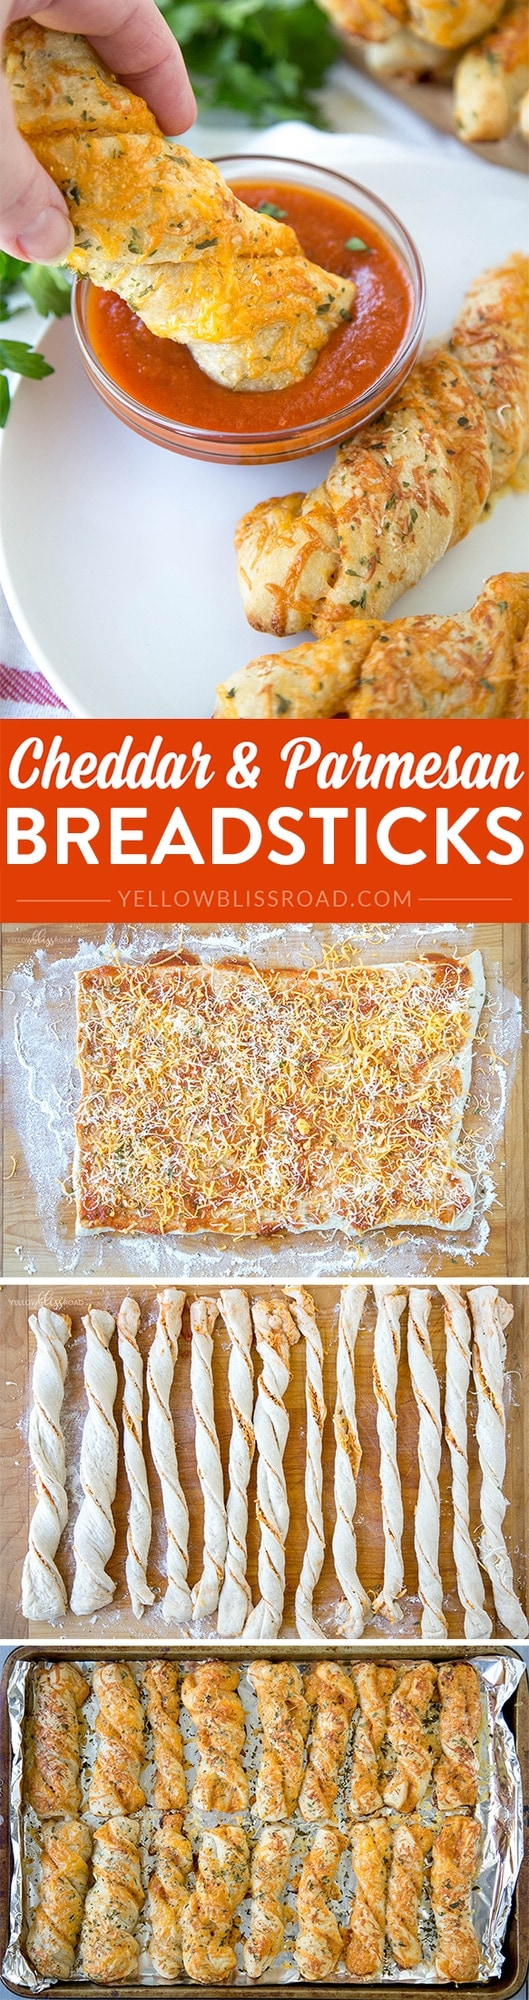 Cheddar & Parmesan Breadsticks - easy to make using premade pizza dough and sauce